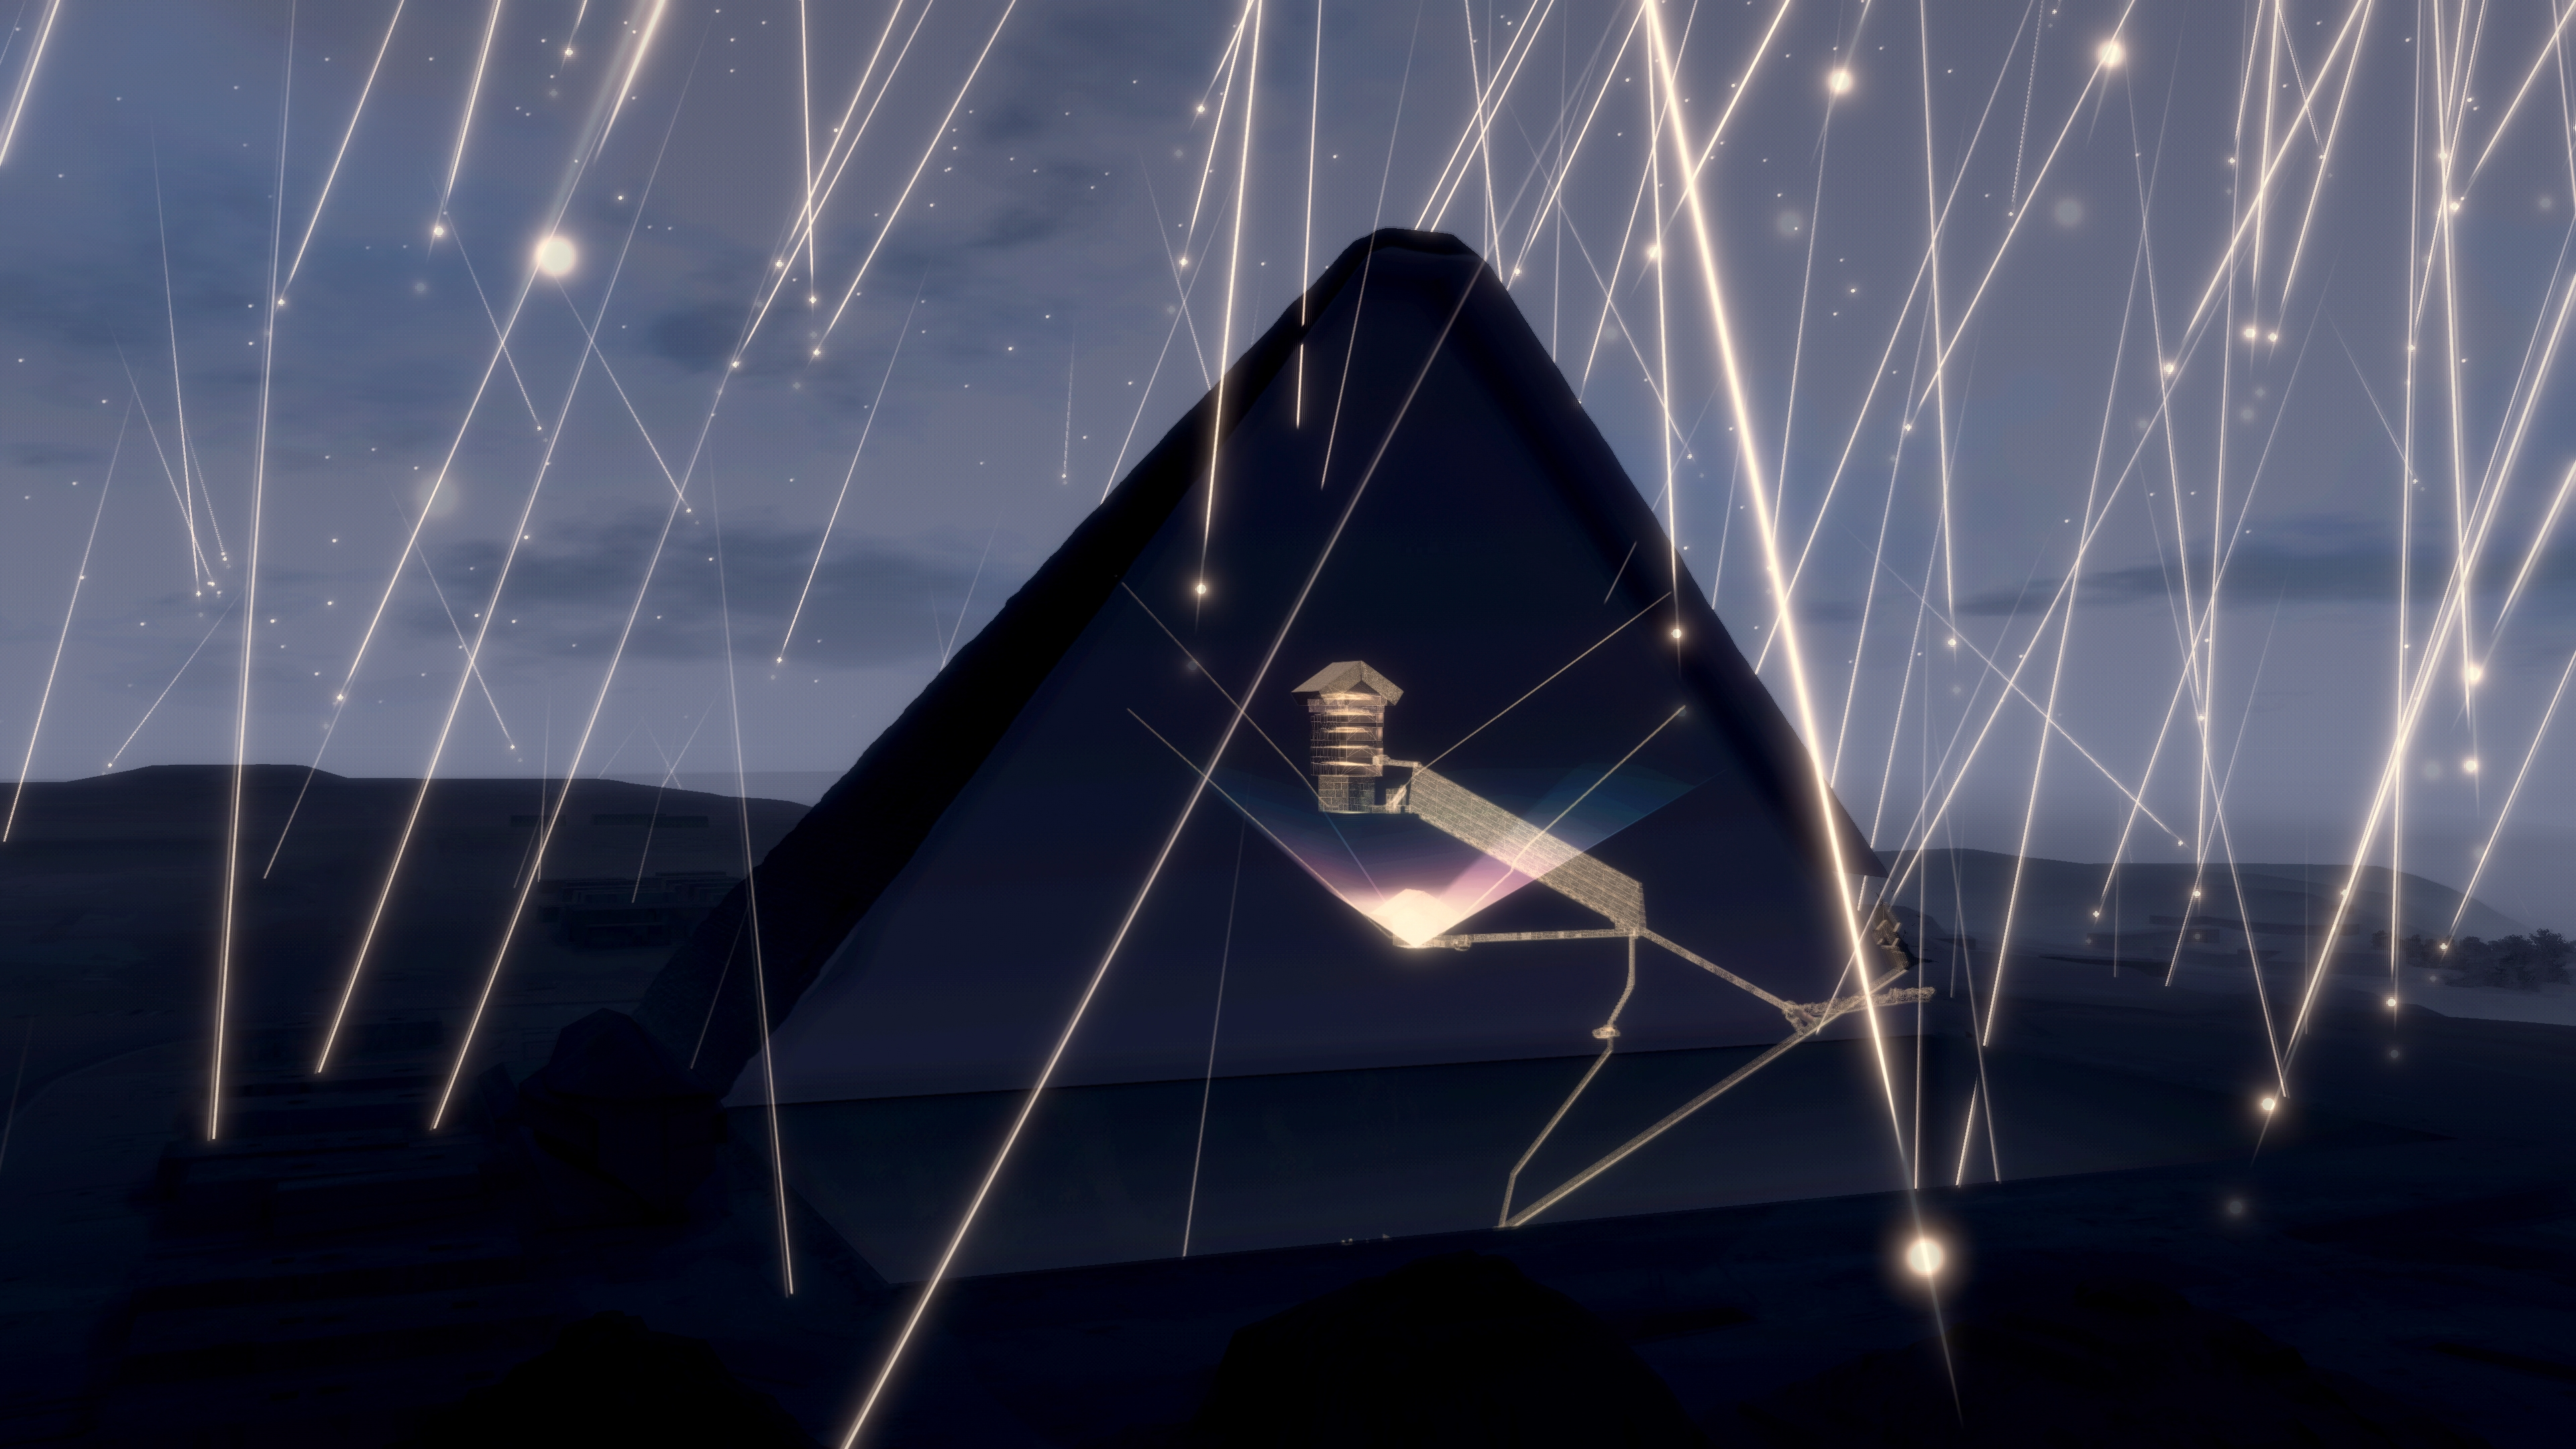 3D-Cosmic-ray-muons-on-the-cut-of-Khufu-pyramid-%C2%ACEmissive-1